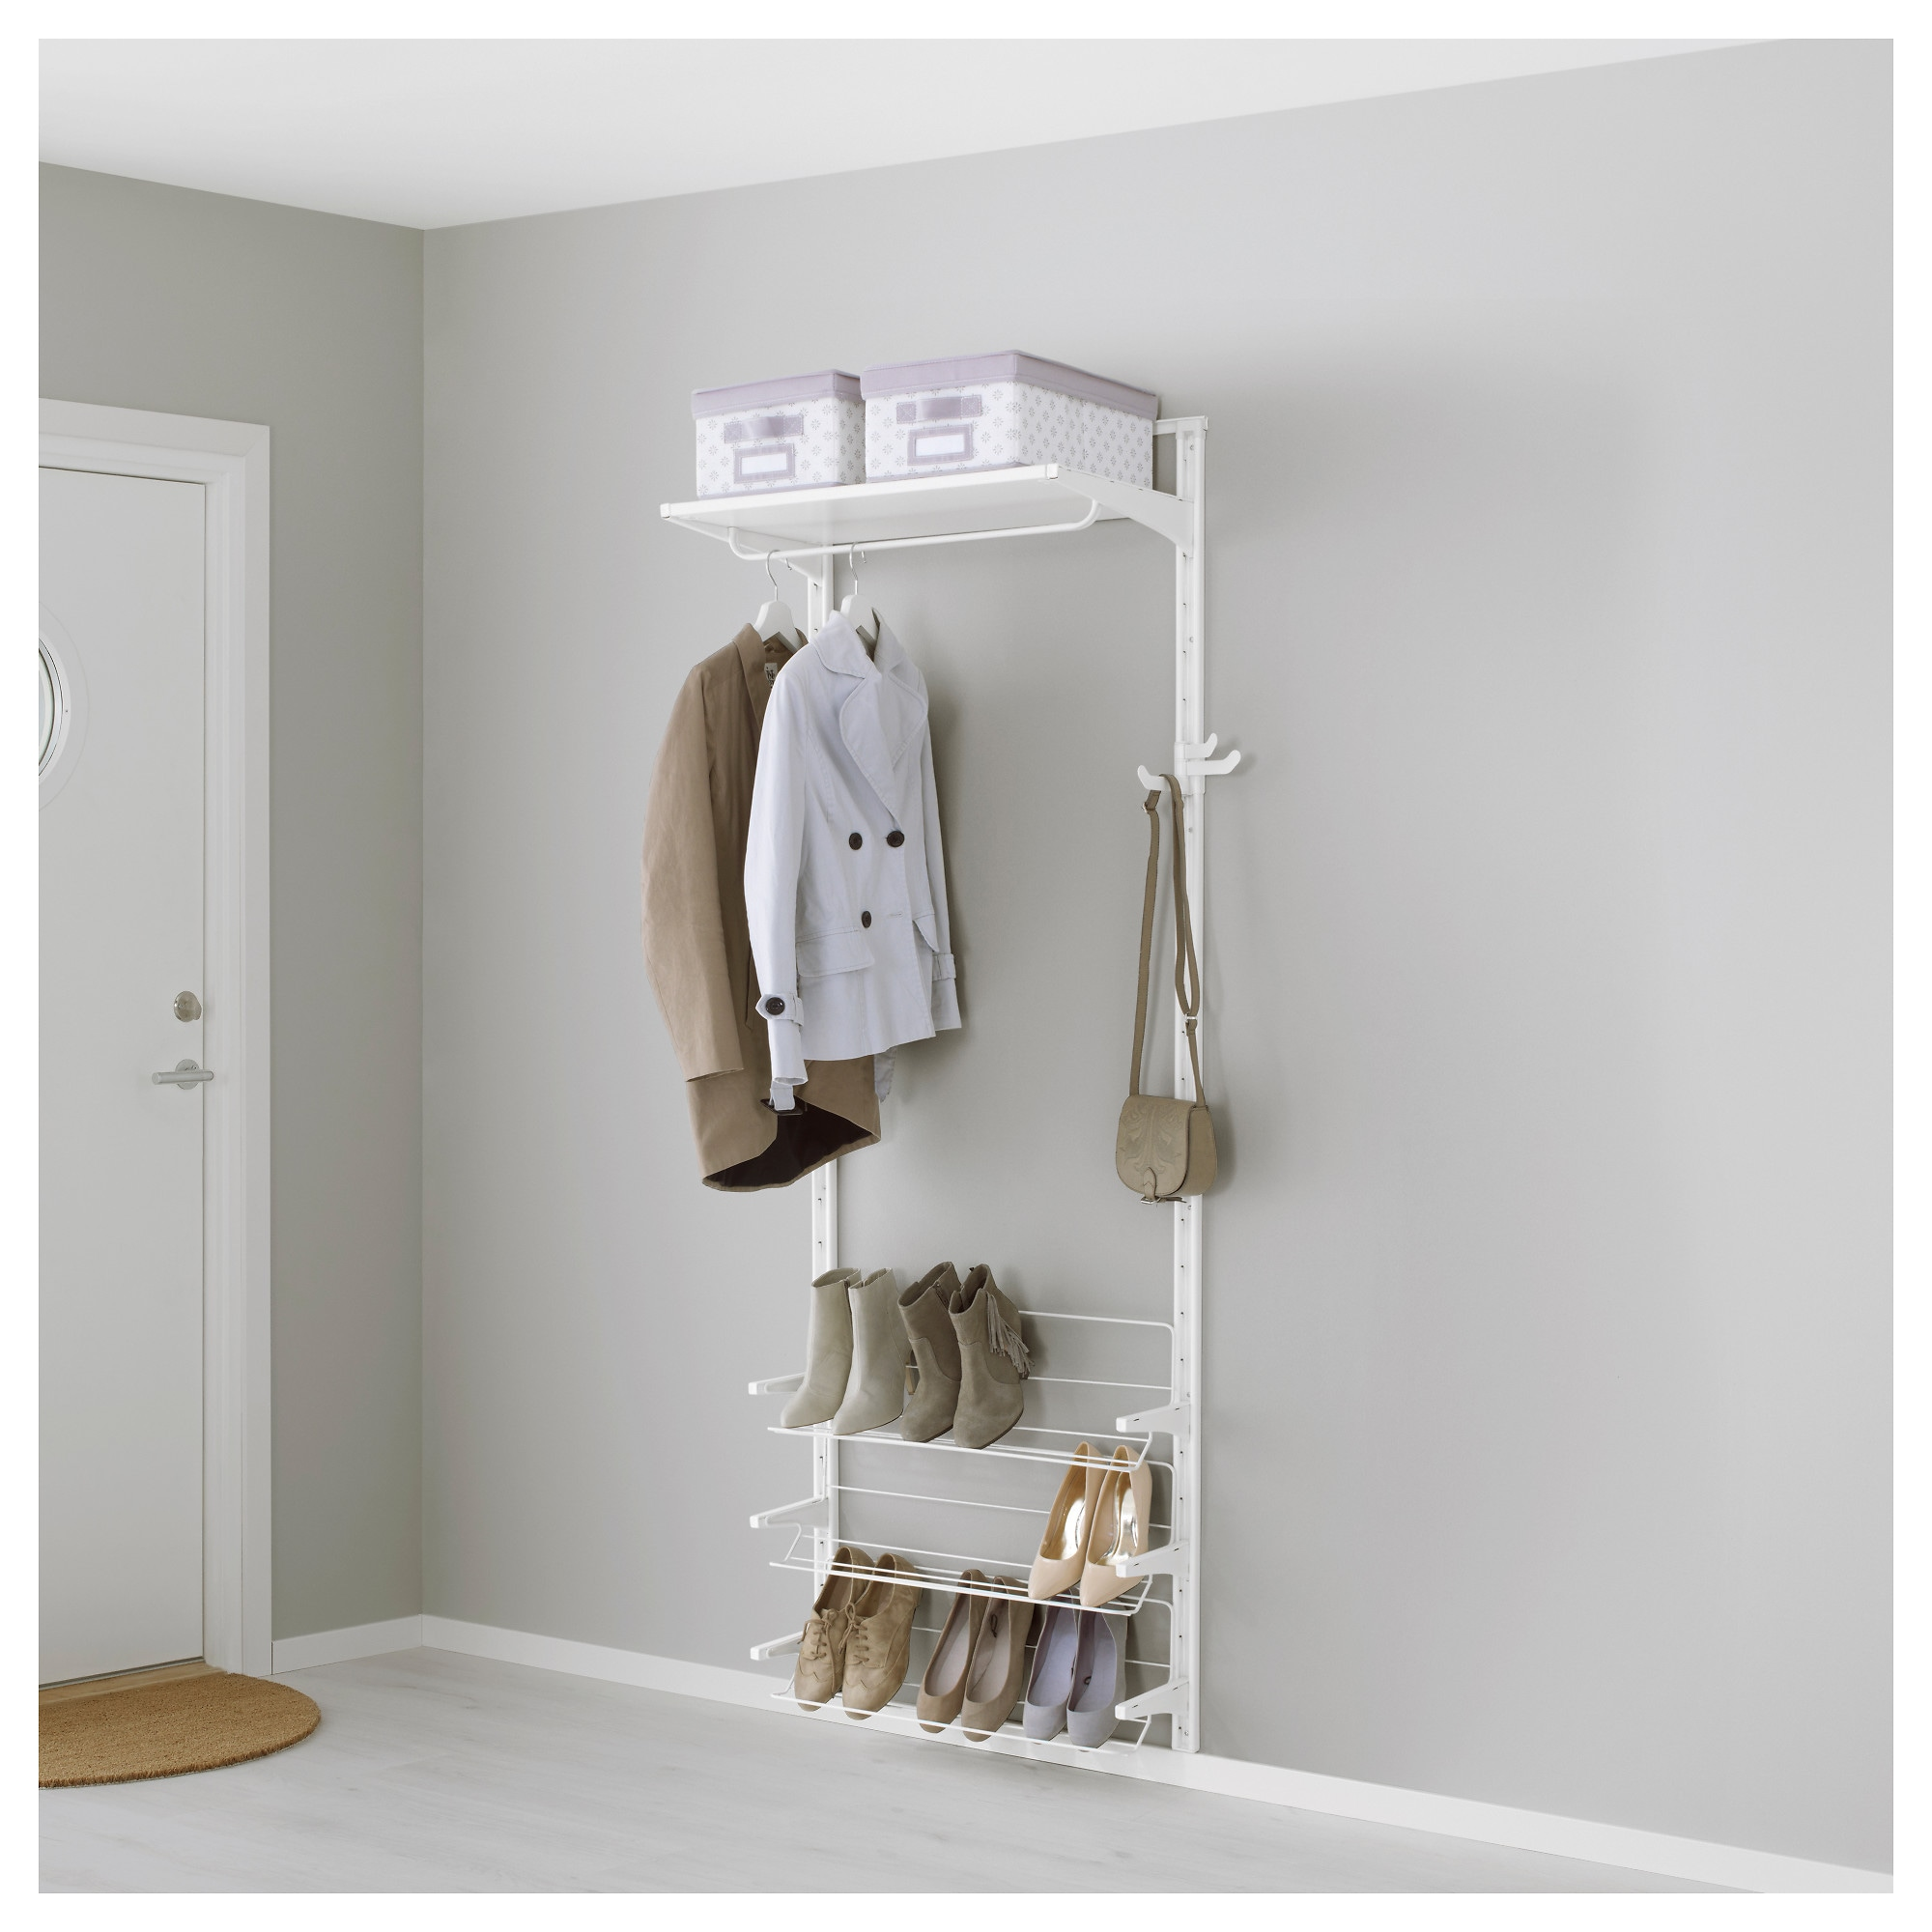 algot wall uprightshelvesshoe organizer white width 29 78 algot white wall mounted storage solution